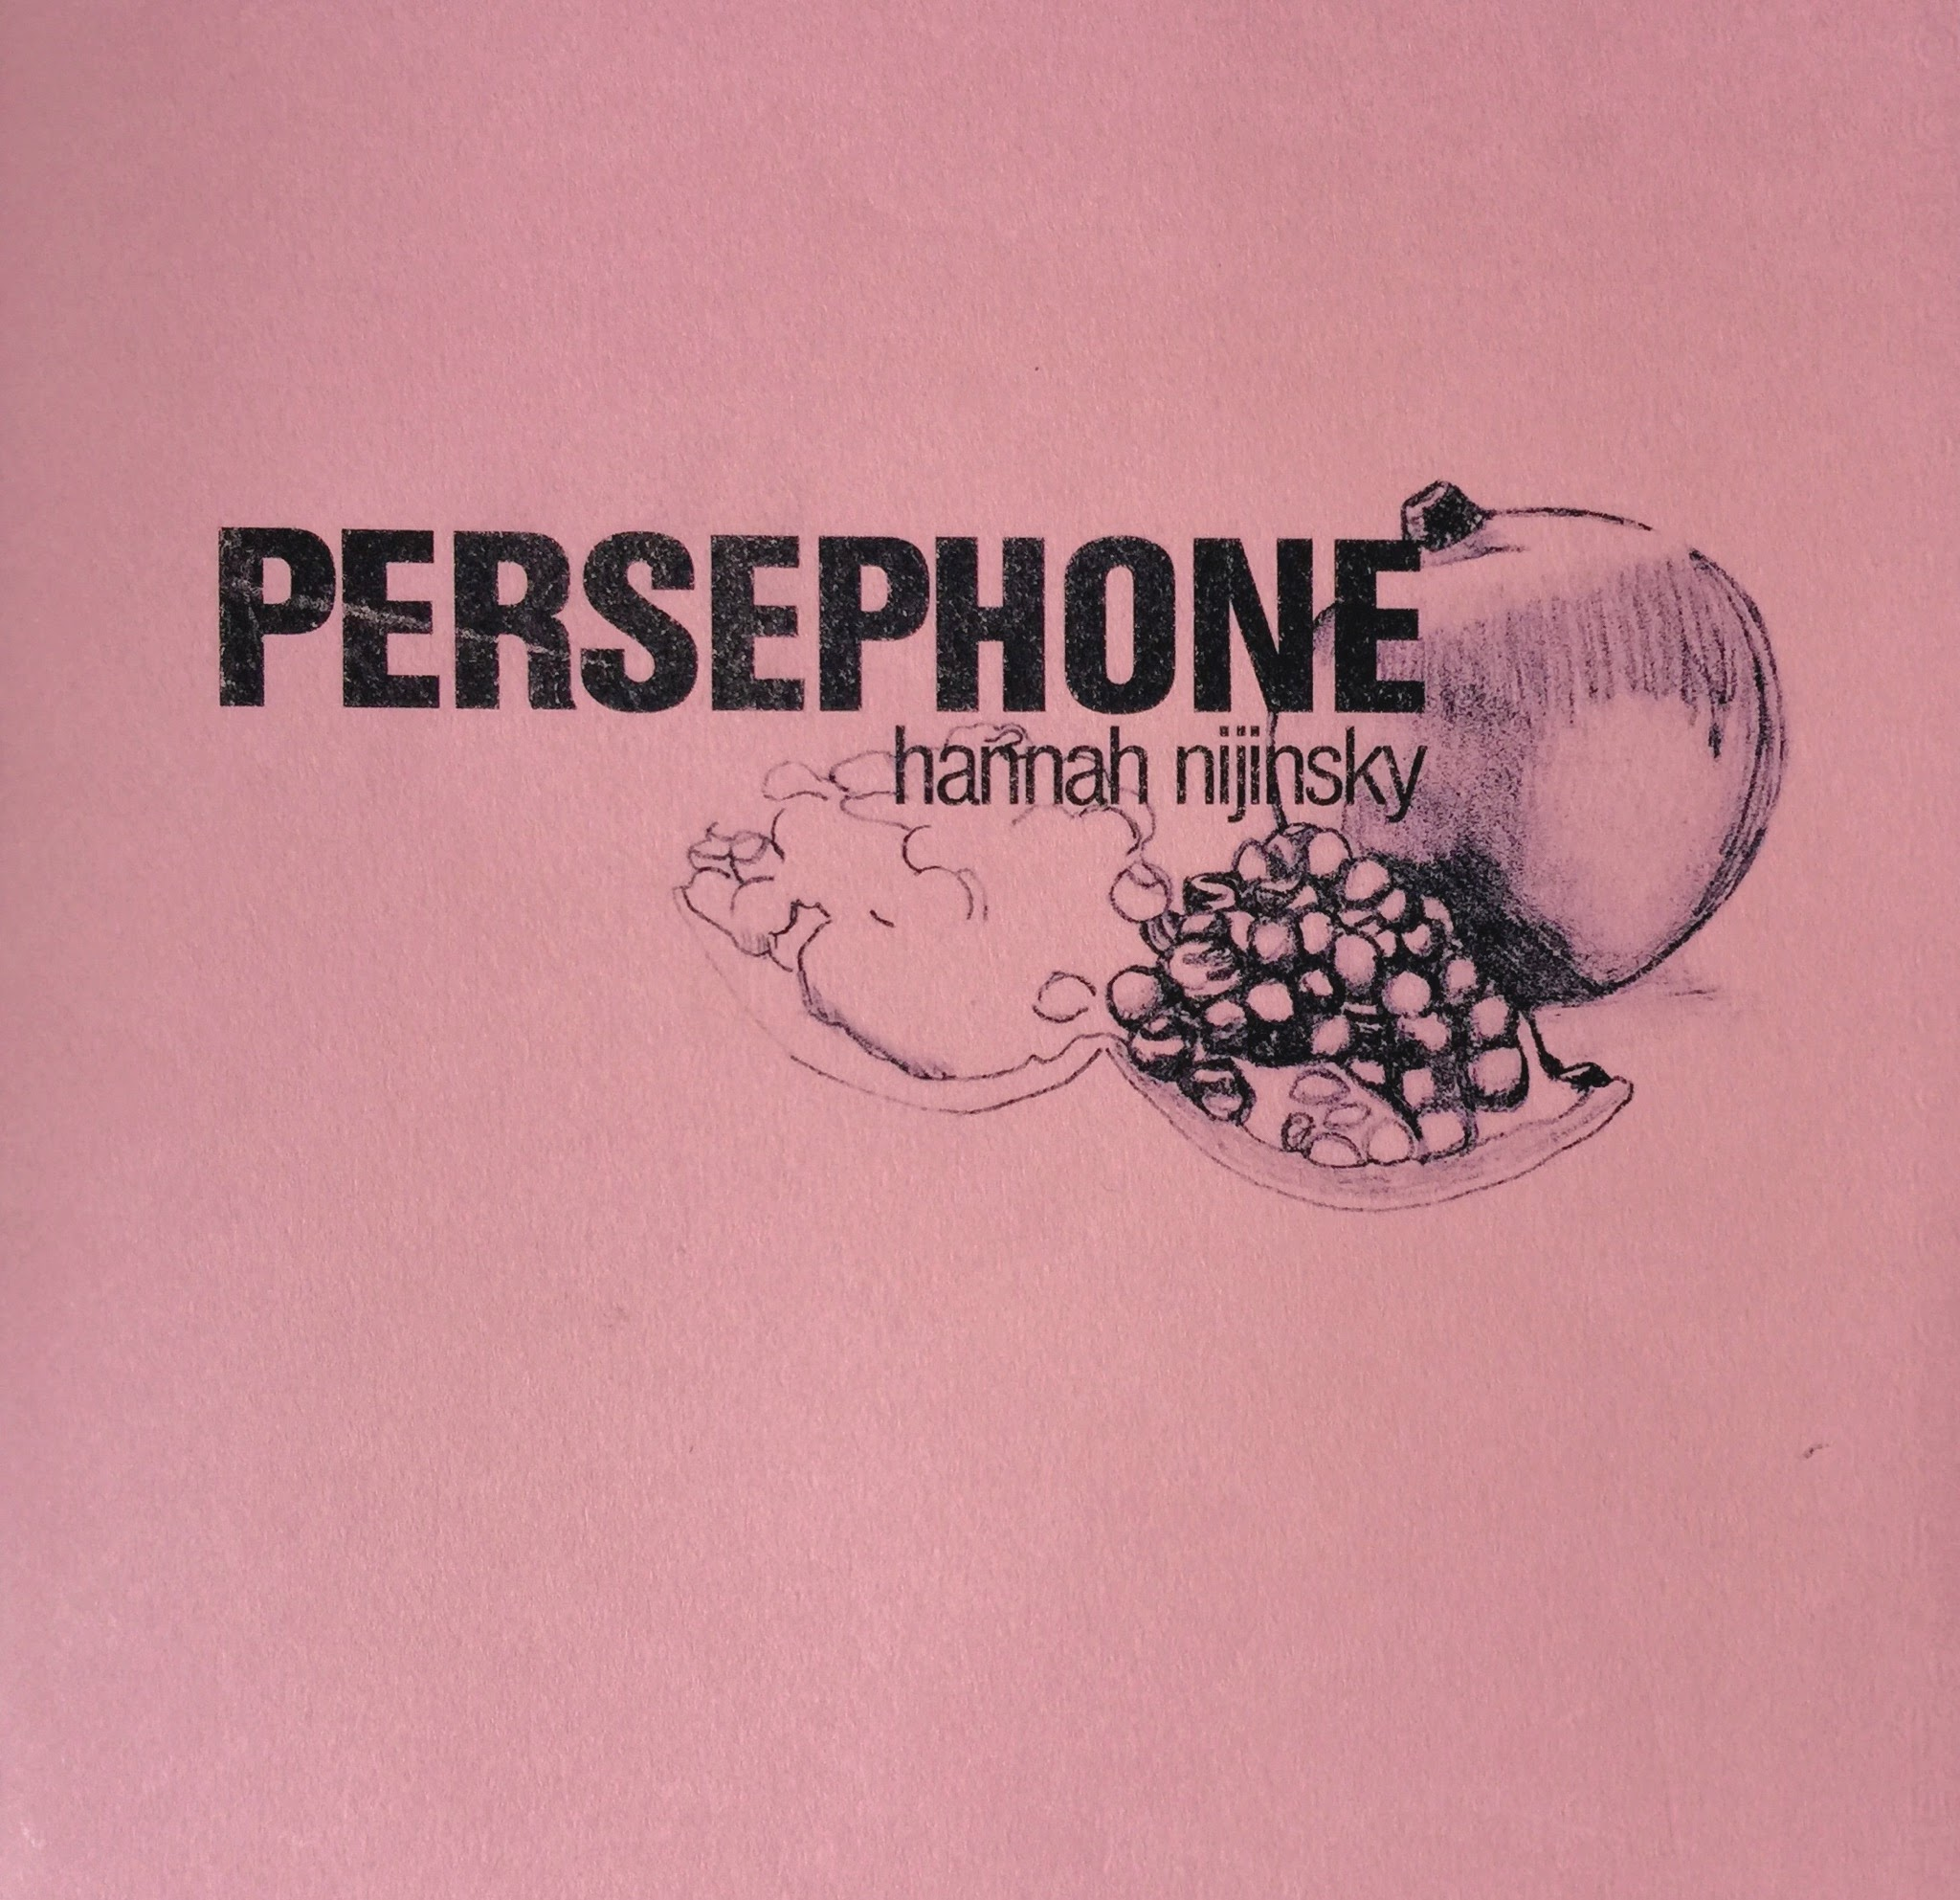 Persephone_bookcover_JohnMost